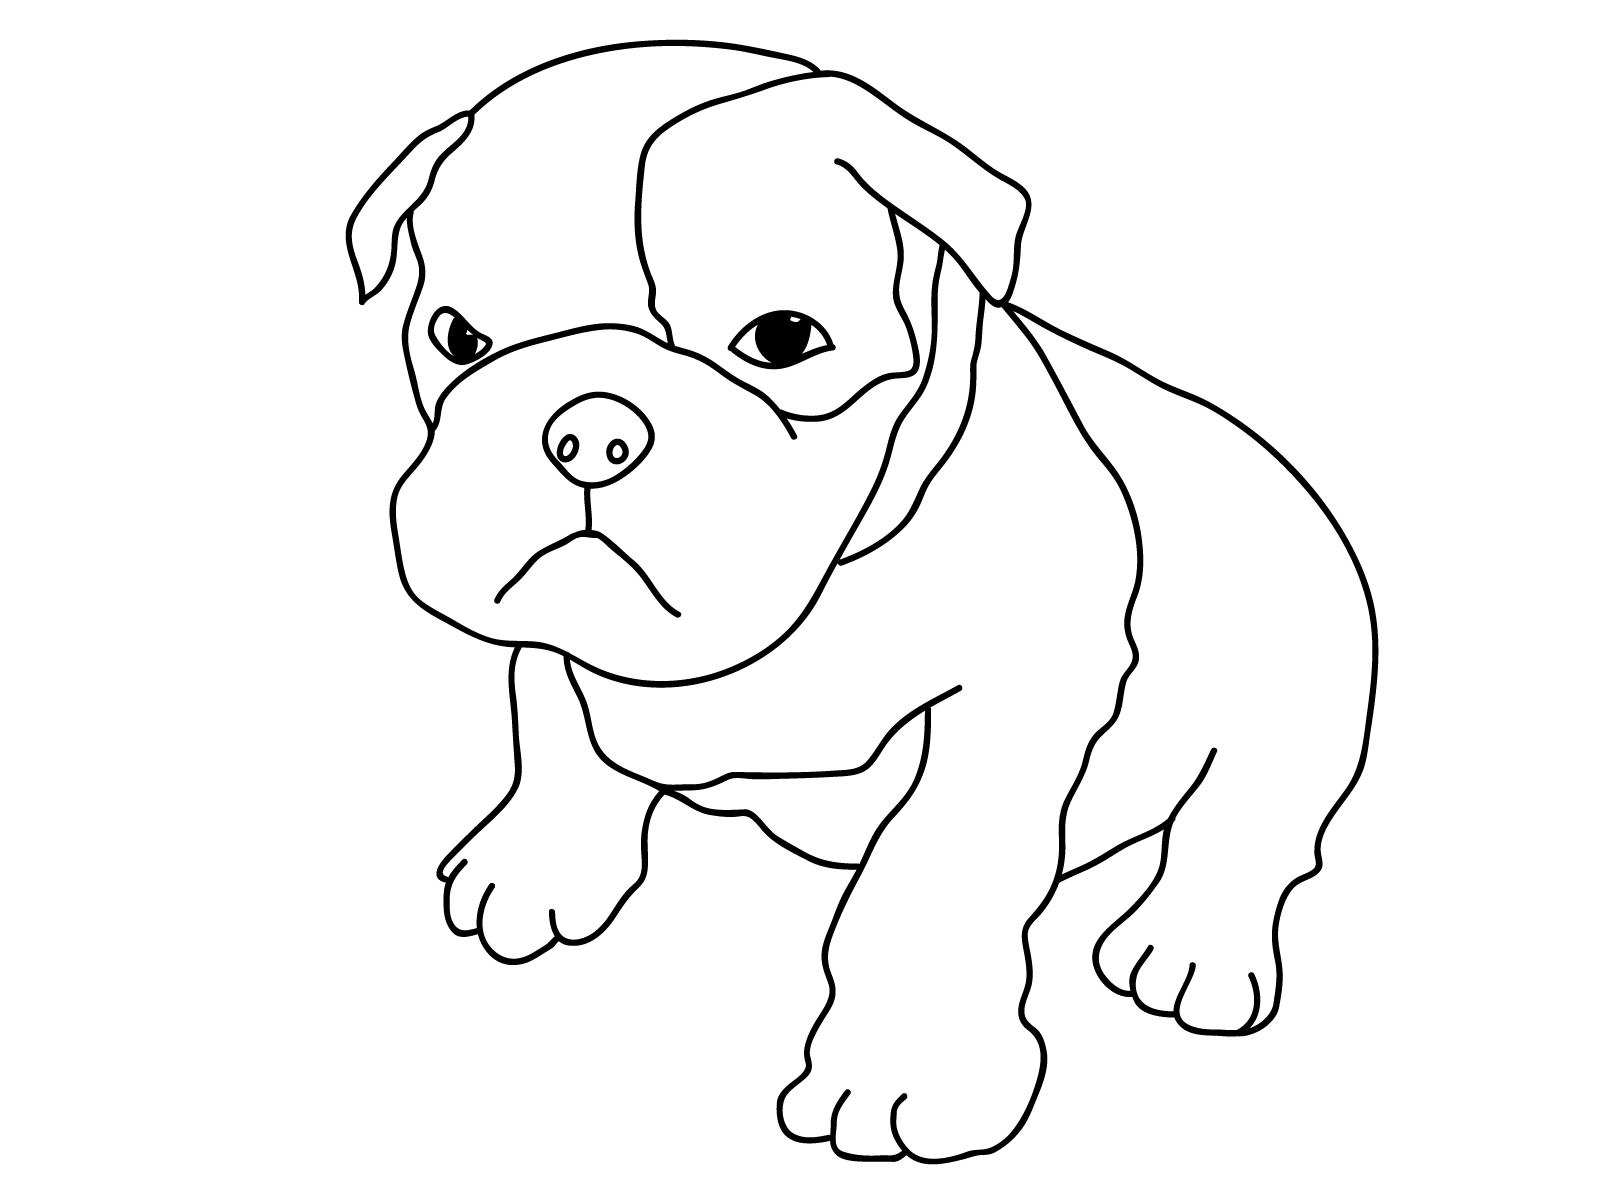 free dog coloring pages cat and dog coloring pages to download and print for free coloring pages dog free